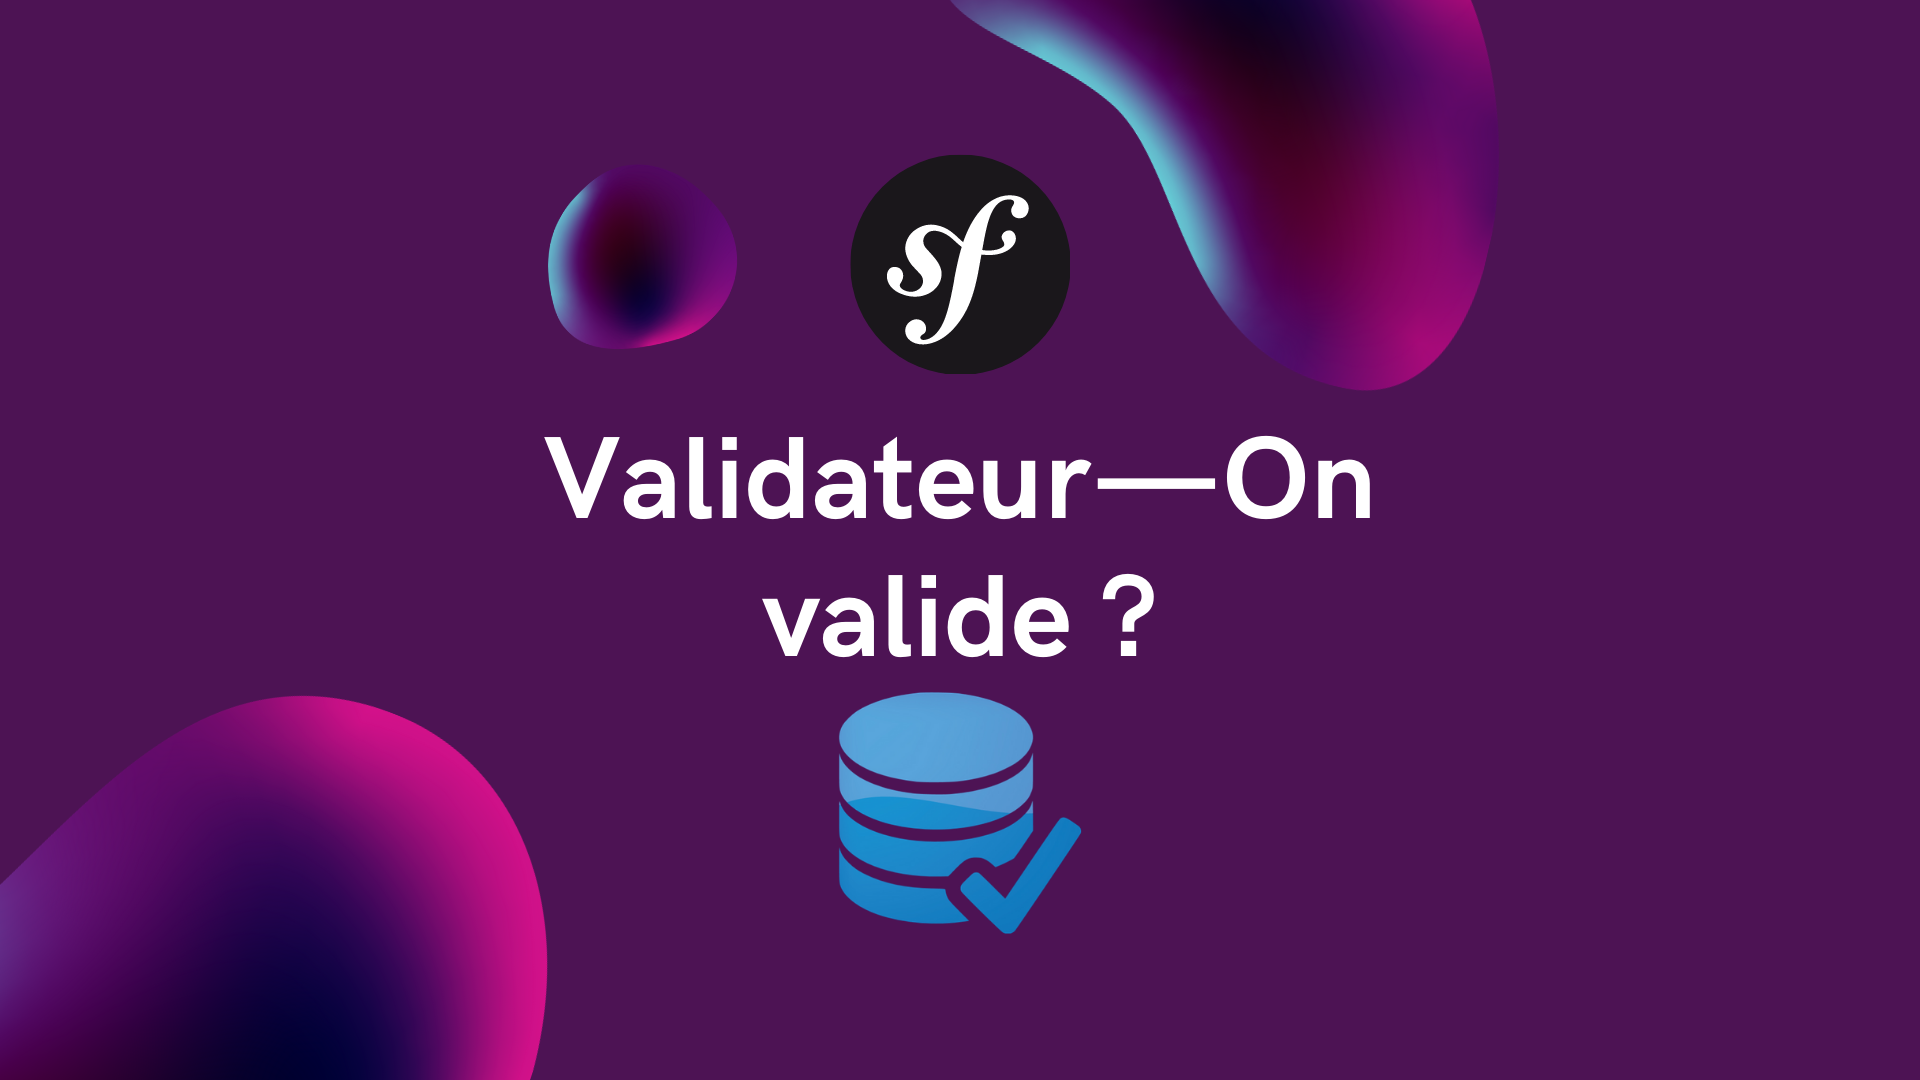 Symfony Validateur – On valide ?